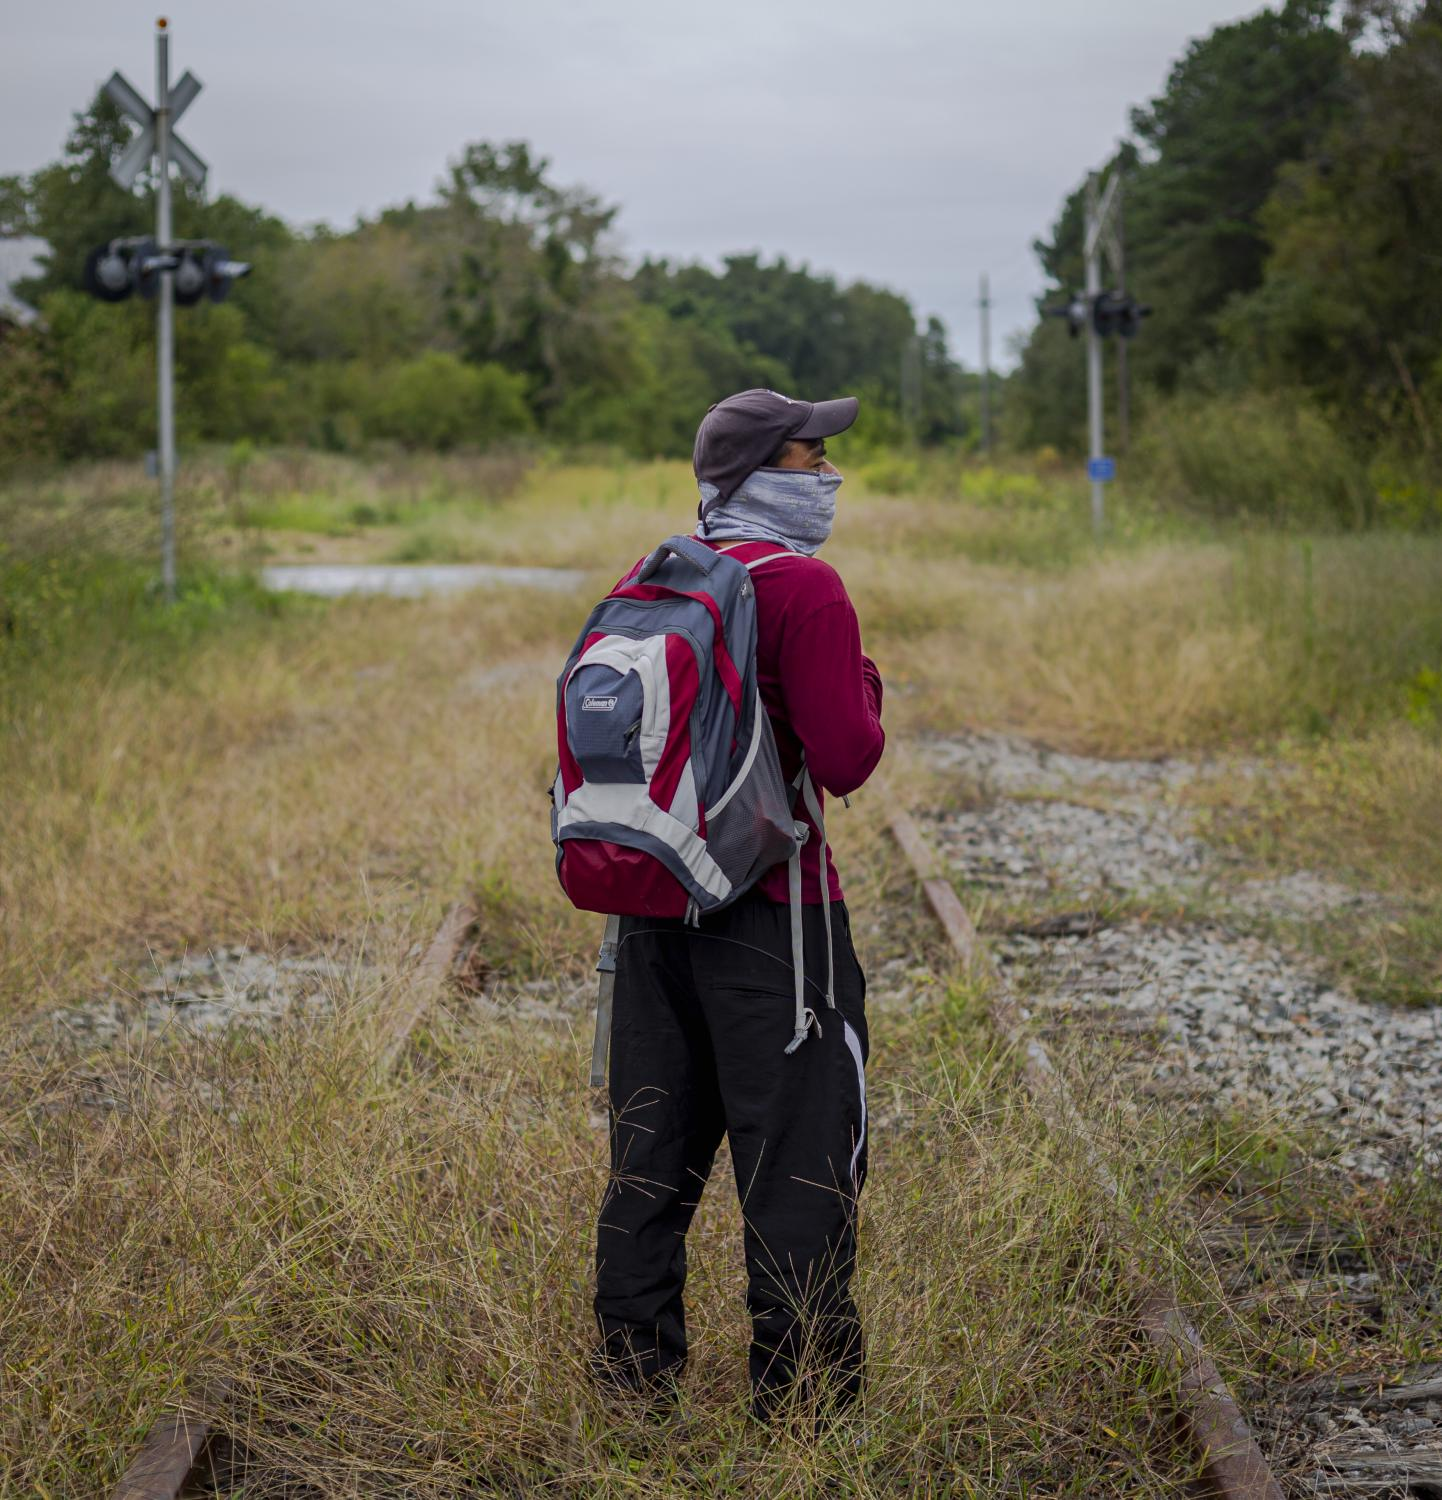 CHERITON, VA – September 26, 2020: Seasonal farmworker poses for a portrait on the abandoned train tracks that they walk to get to one of the two Latino stores in town. Seasonal farmworkers are brought by the thousands to toil in the tomato fields, since the start of the covid-19 pandemic, their conditions have worsened. Photo: Carlos Bernate for The New York Times